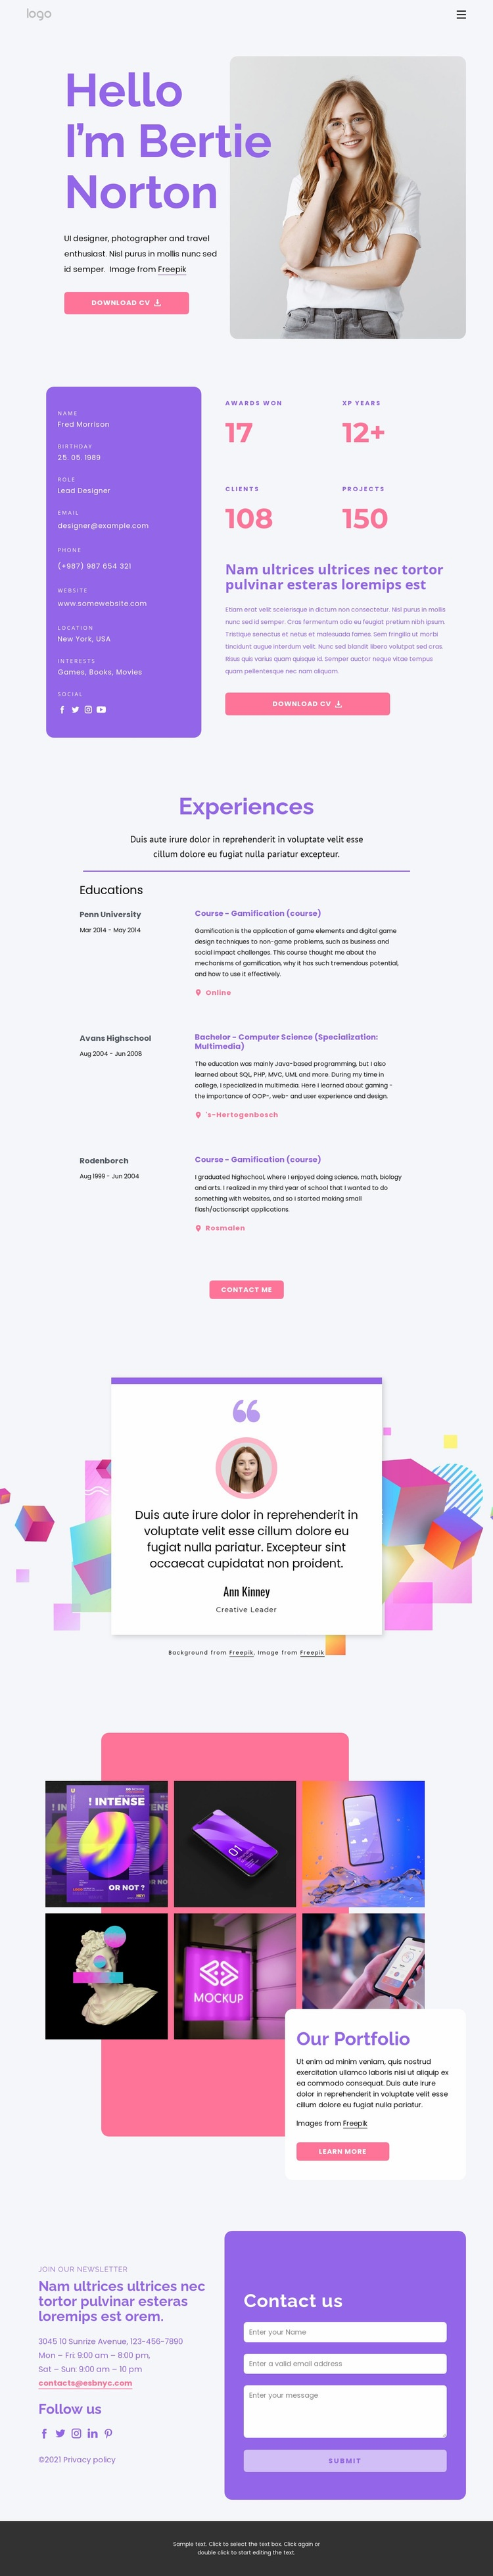 Personal website Html Code Example